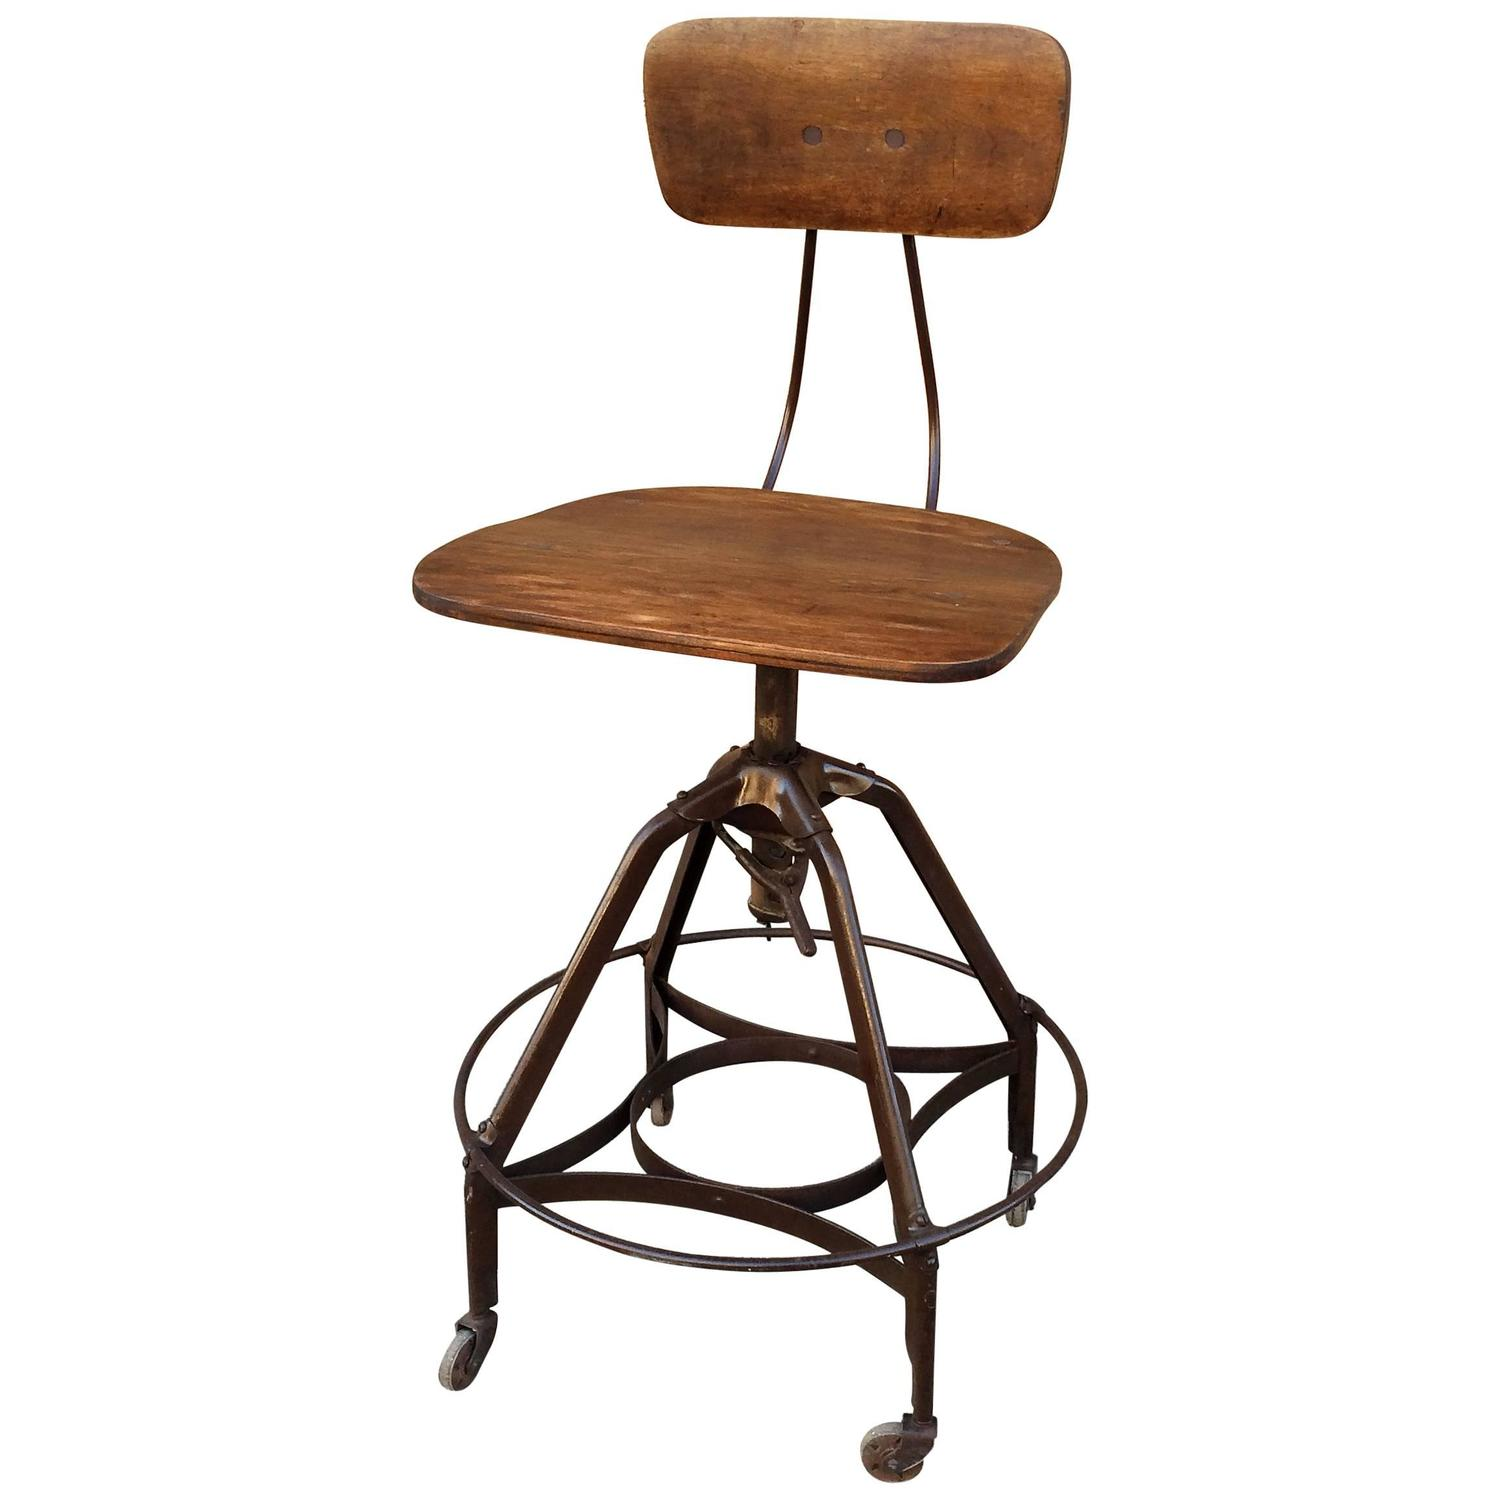 Early Industrial Toledo Drafting Stool For Sale At 1stdibs